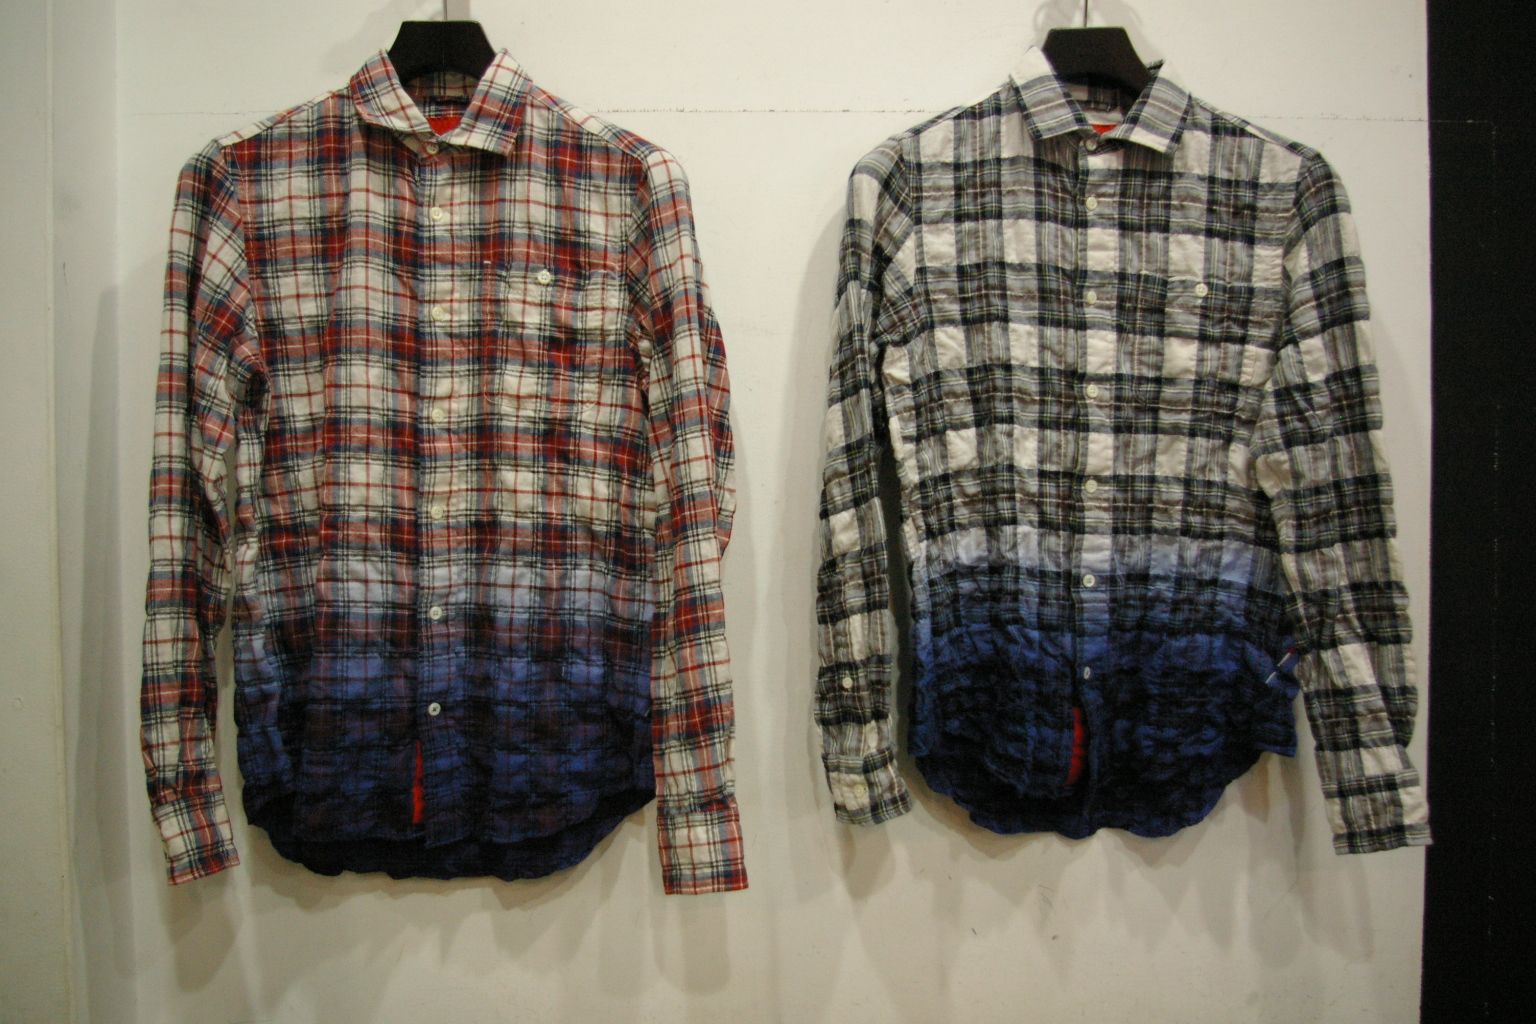 ARTYZ DANZOME CHECK SHIRT